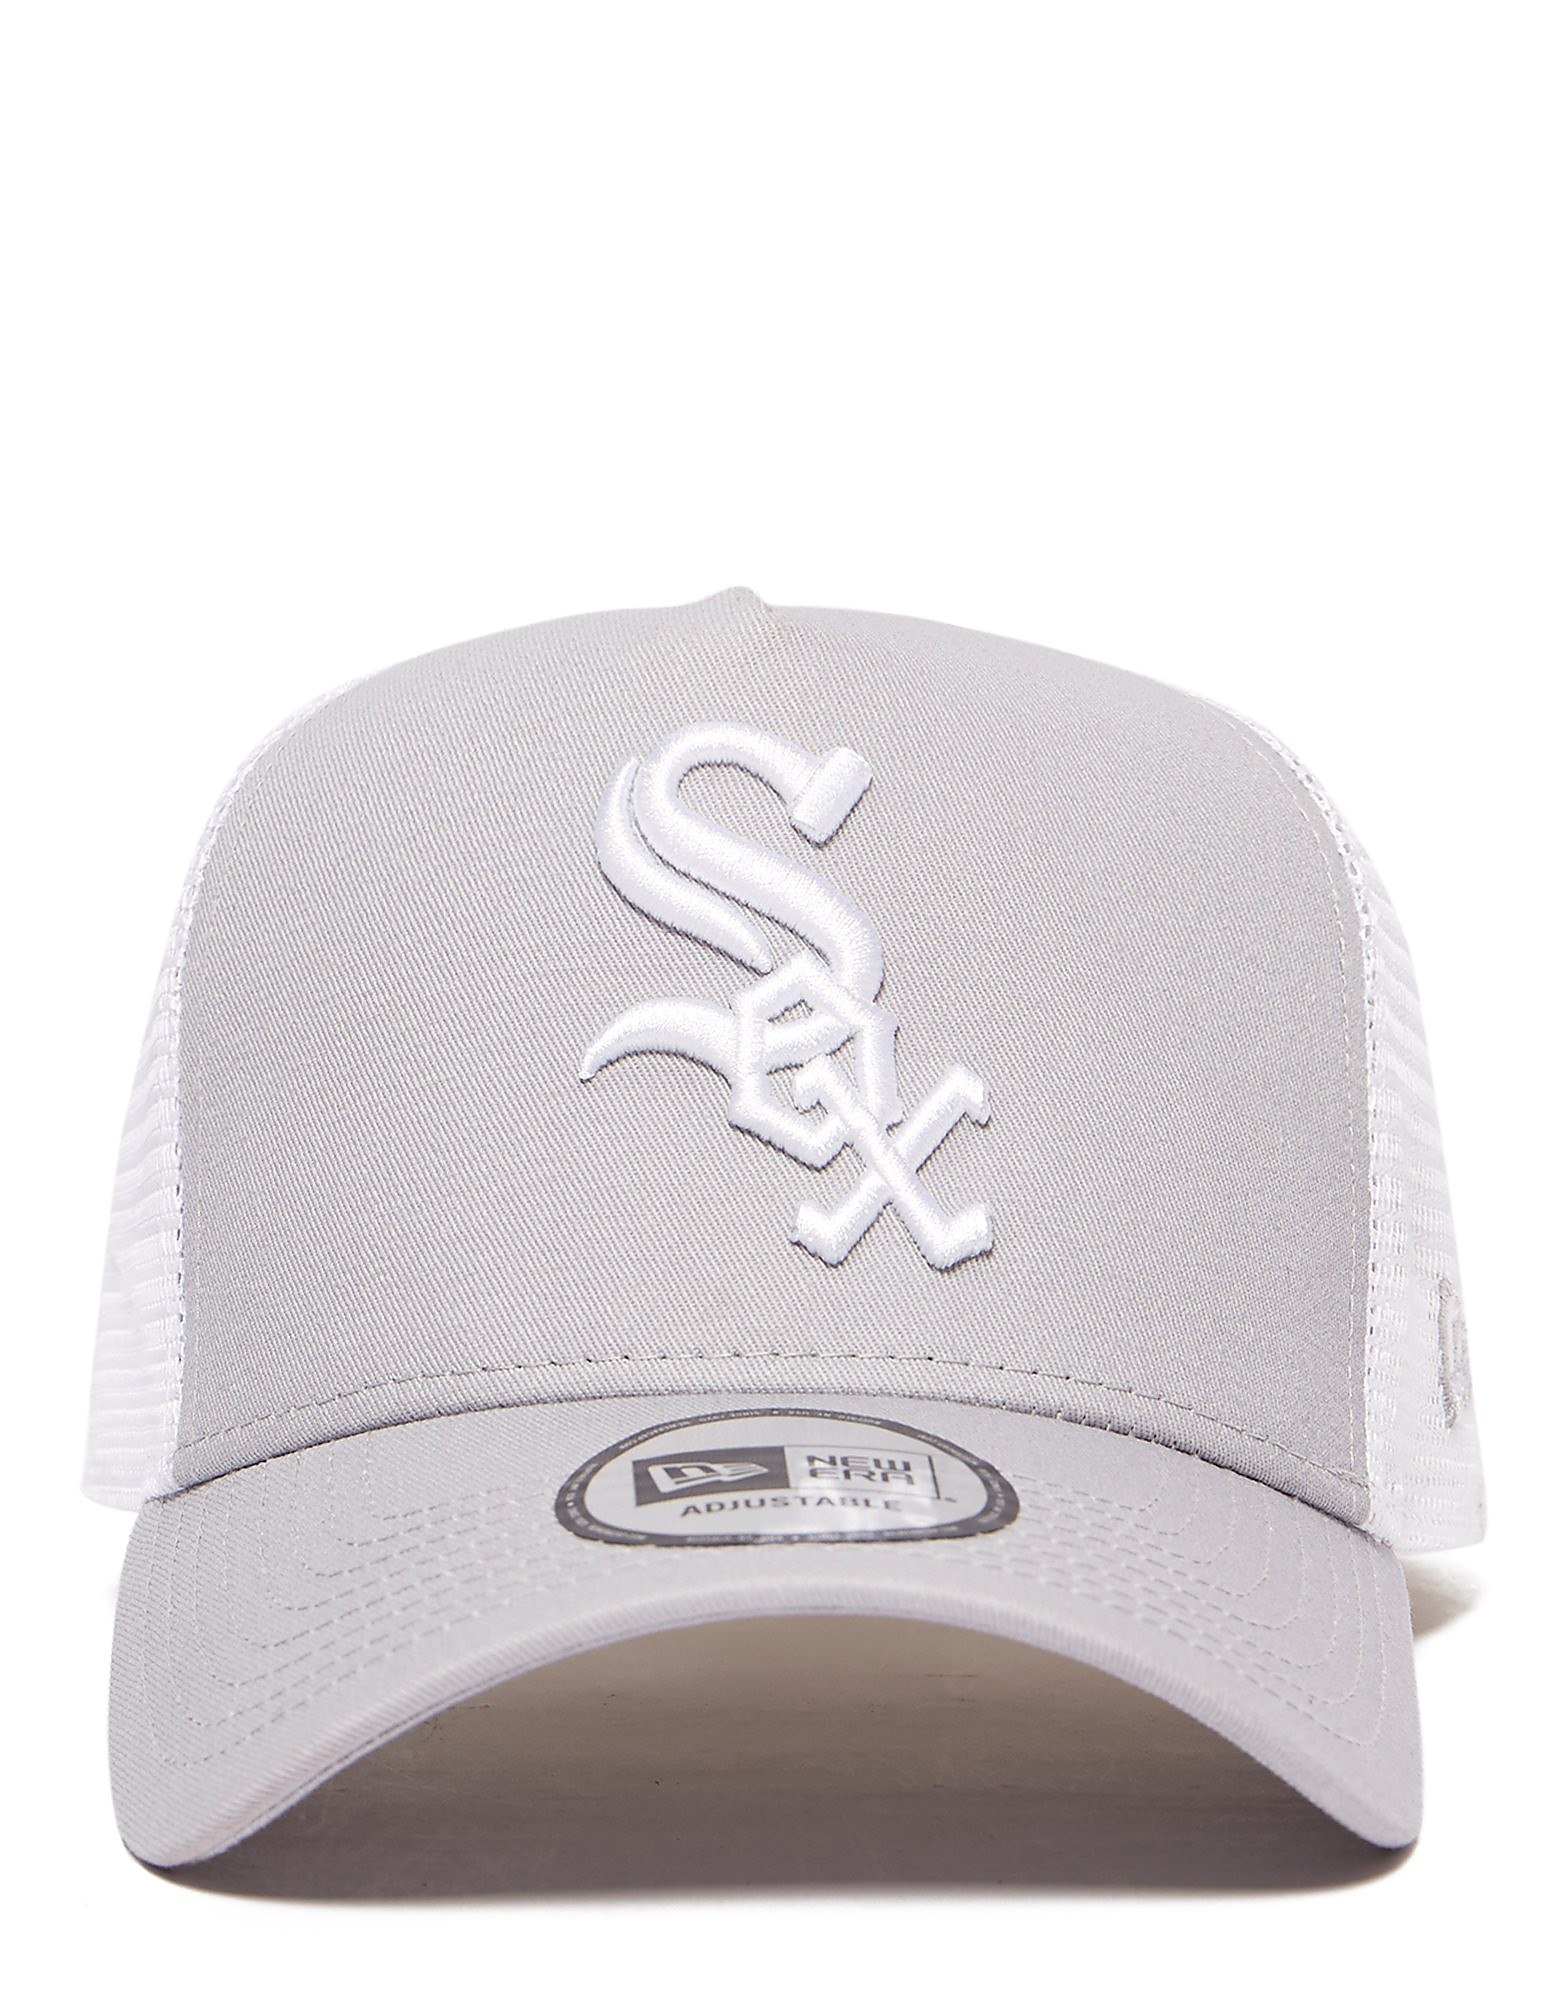 New Era gorra Chicago White Sox Trucker